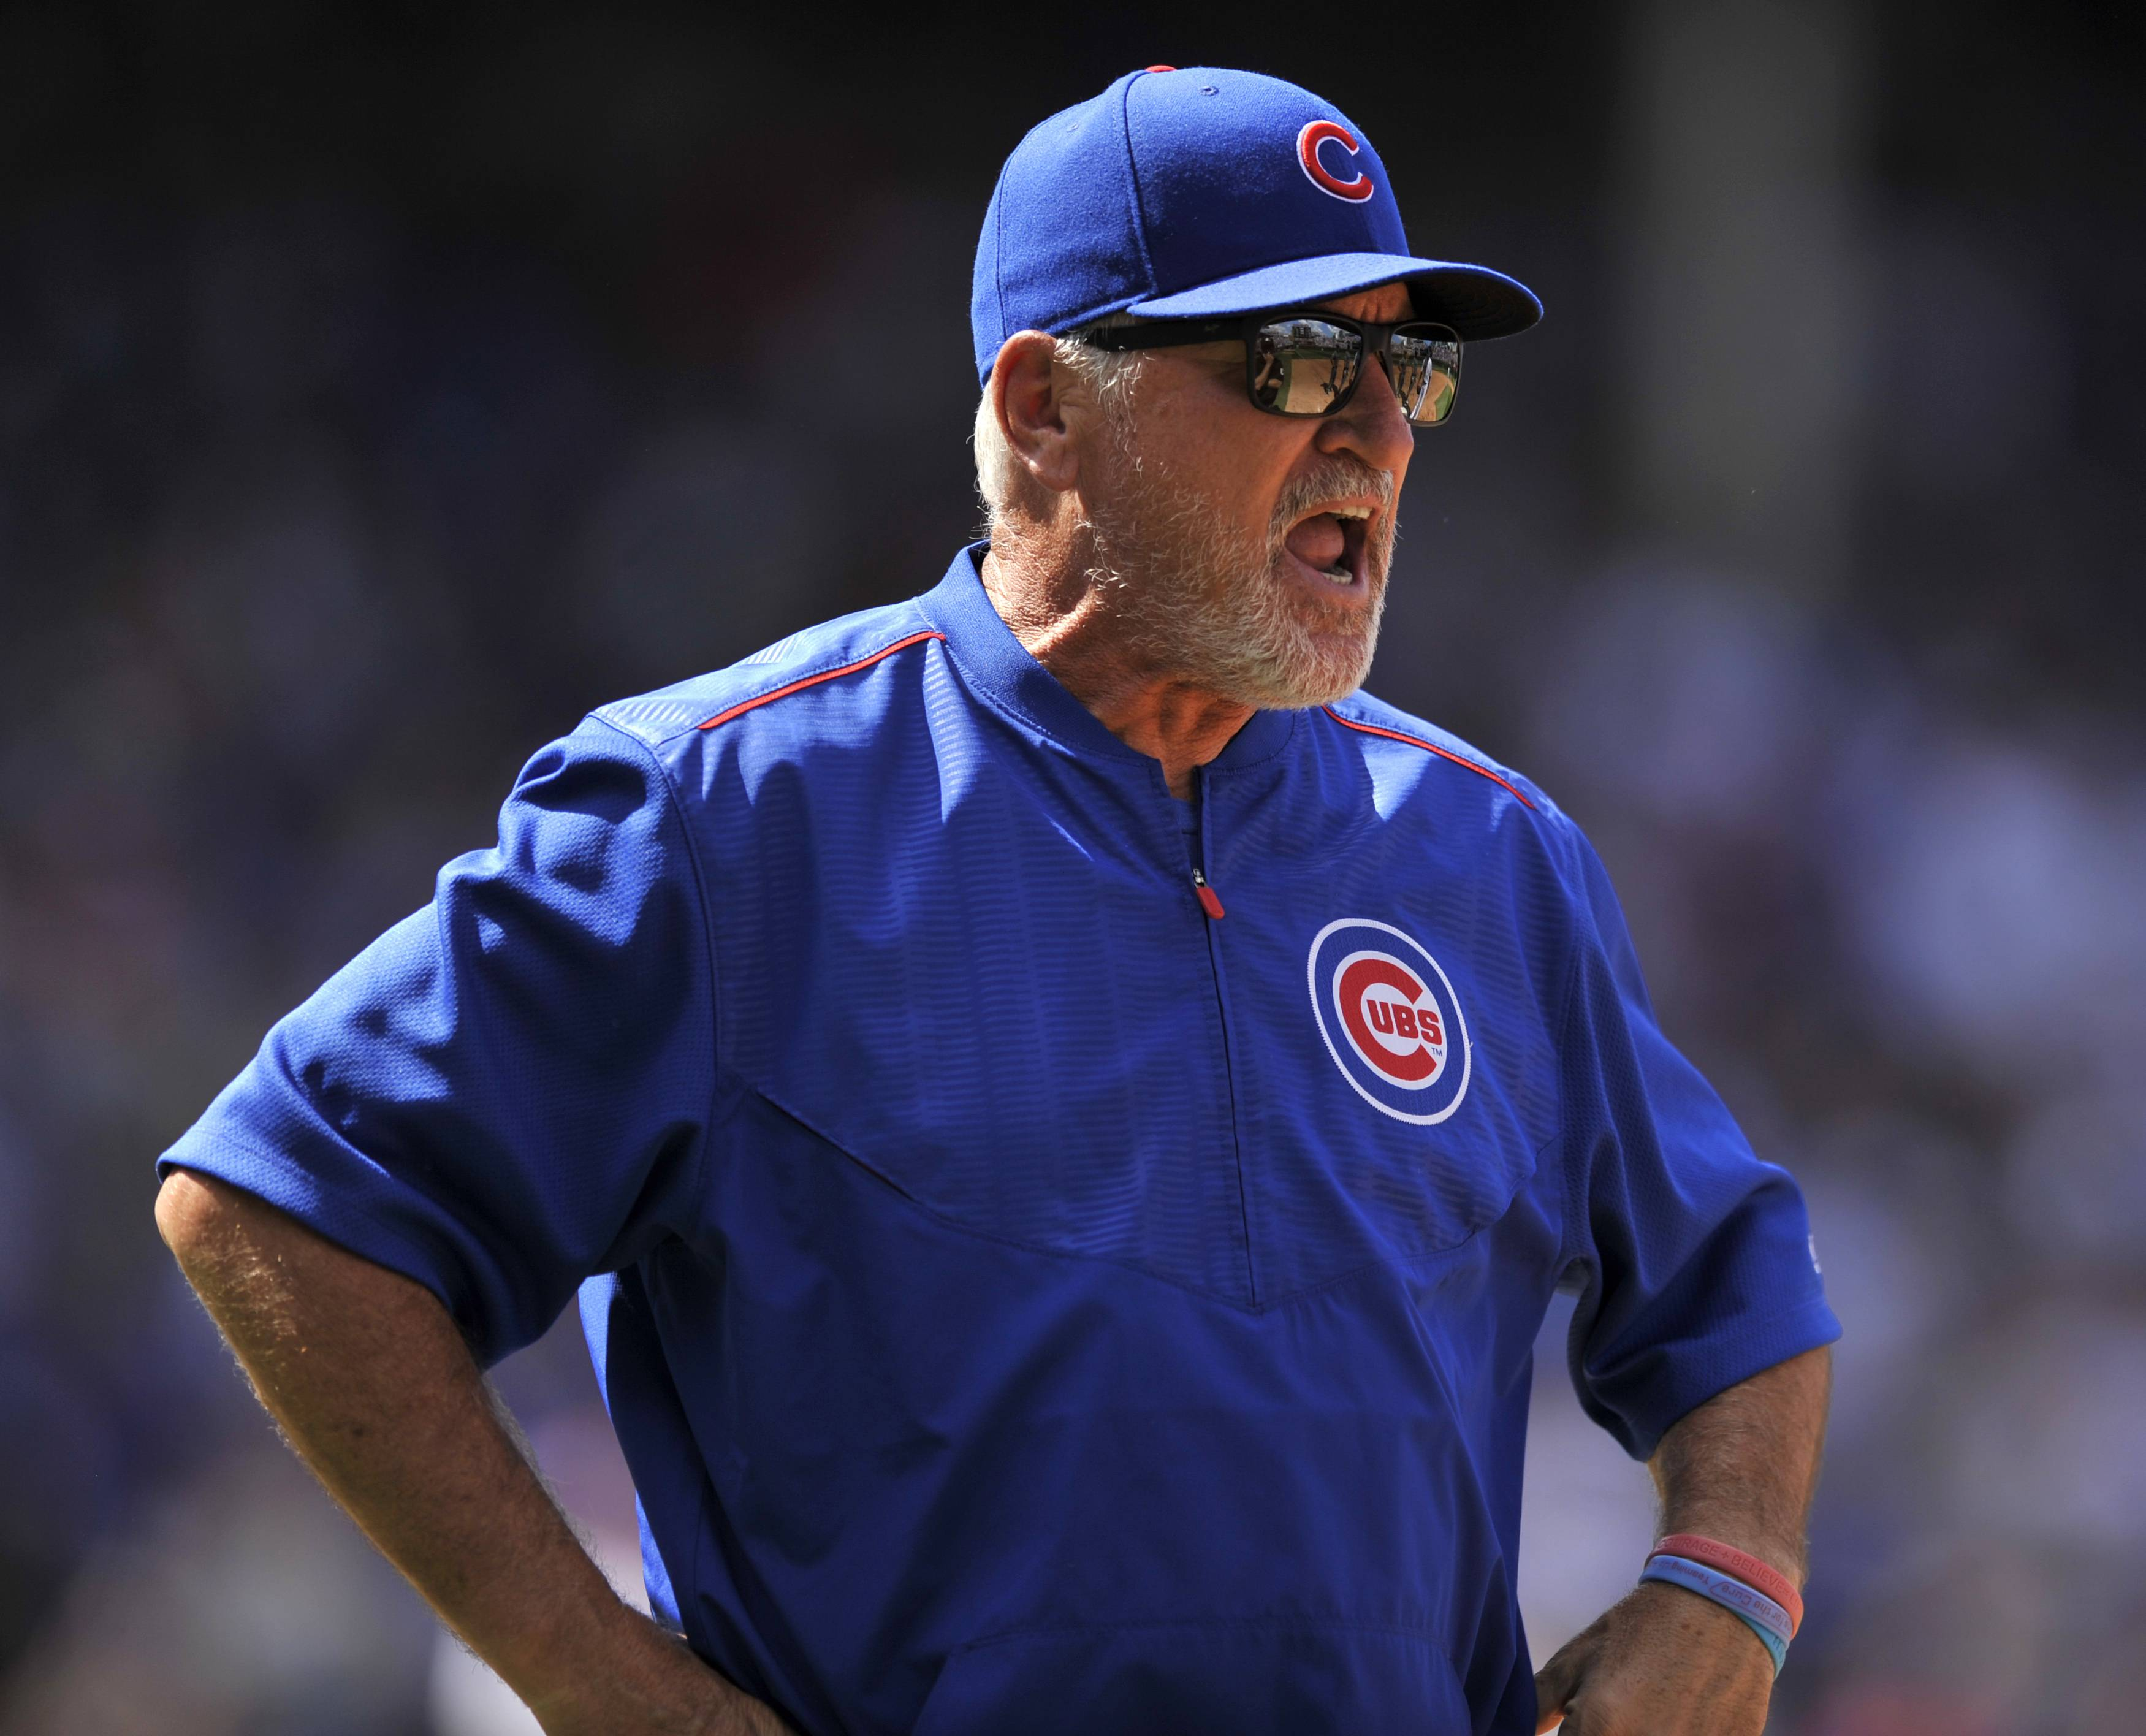 Even as good as his team his been this season, the best might still be yet to come for manager Joe Maddon and the Chicago Cubs.